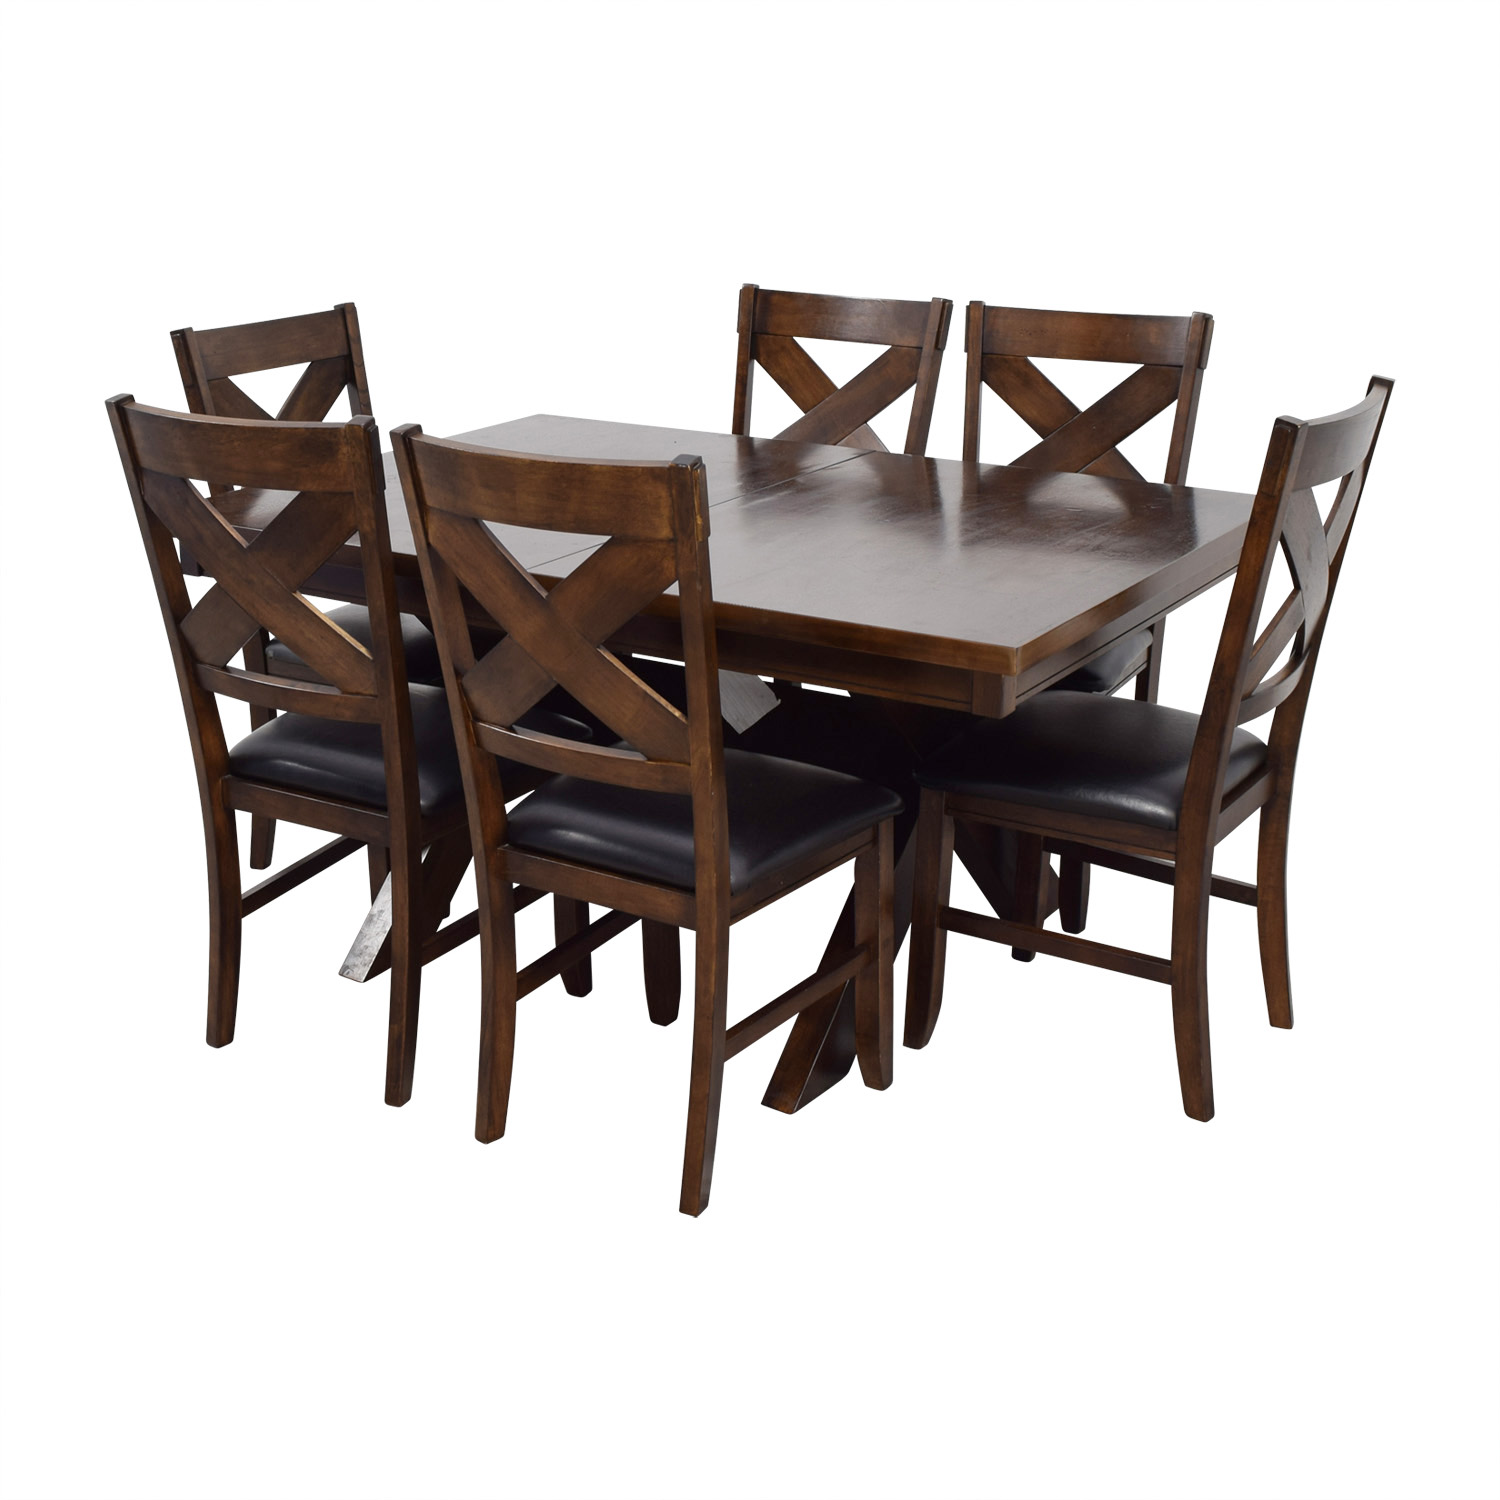 55 off green river wood green river wood dining set with black